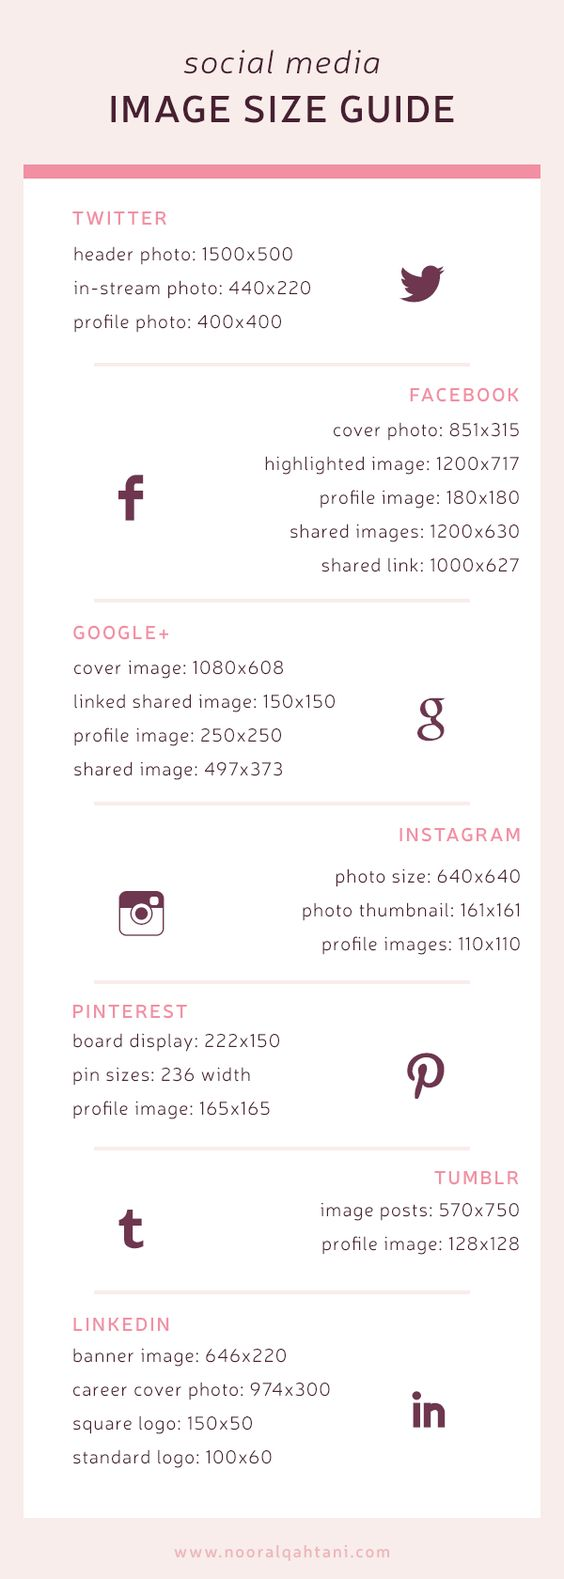 Social media sites are updating so much it can get confusing trying to remember all the correct sizes you need for your images. I made a simple guide that's current as of July 2015 for you to keep and remember...